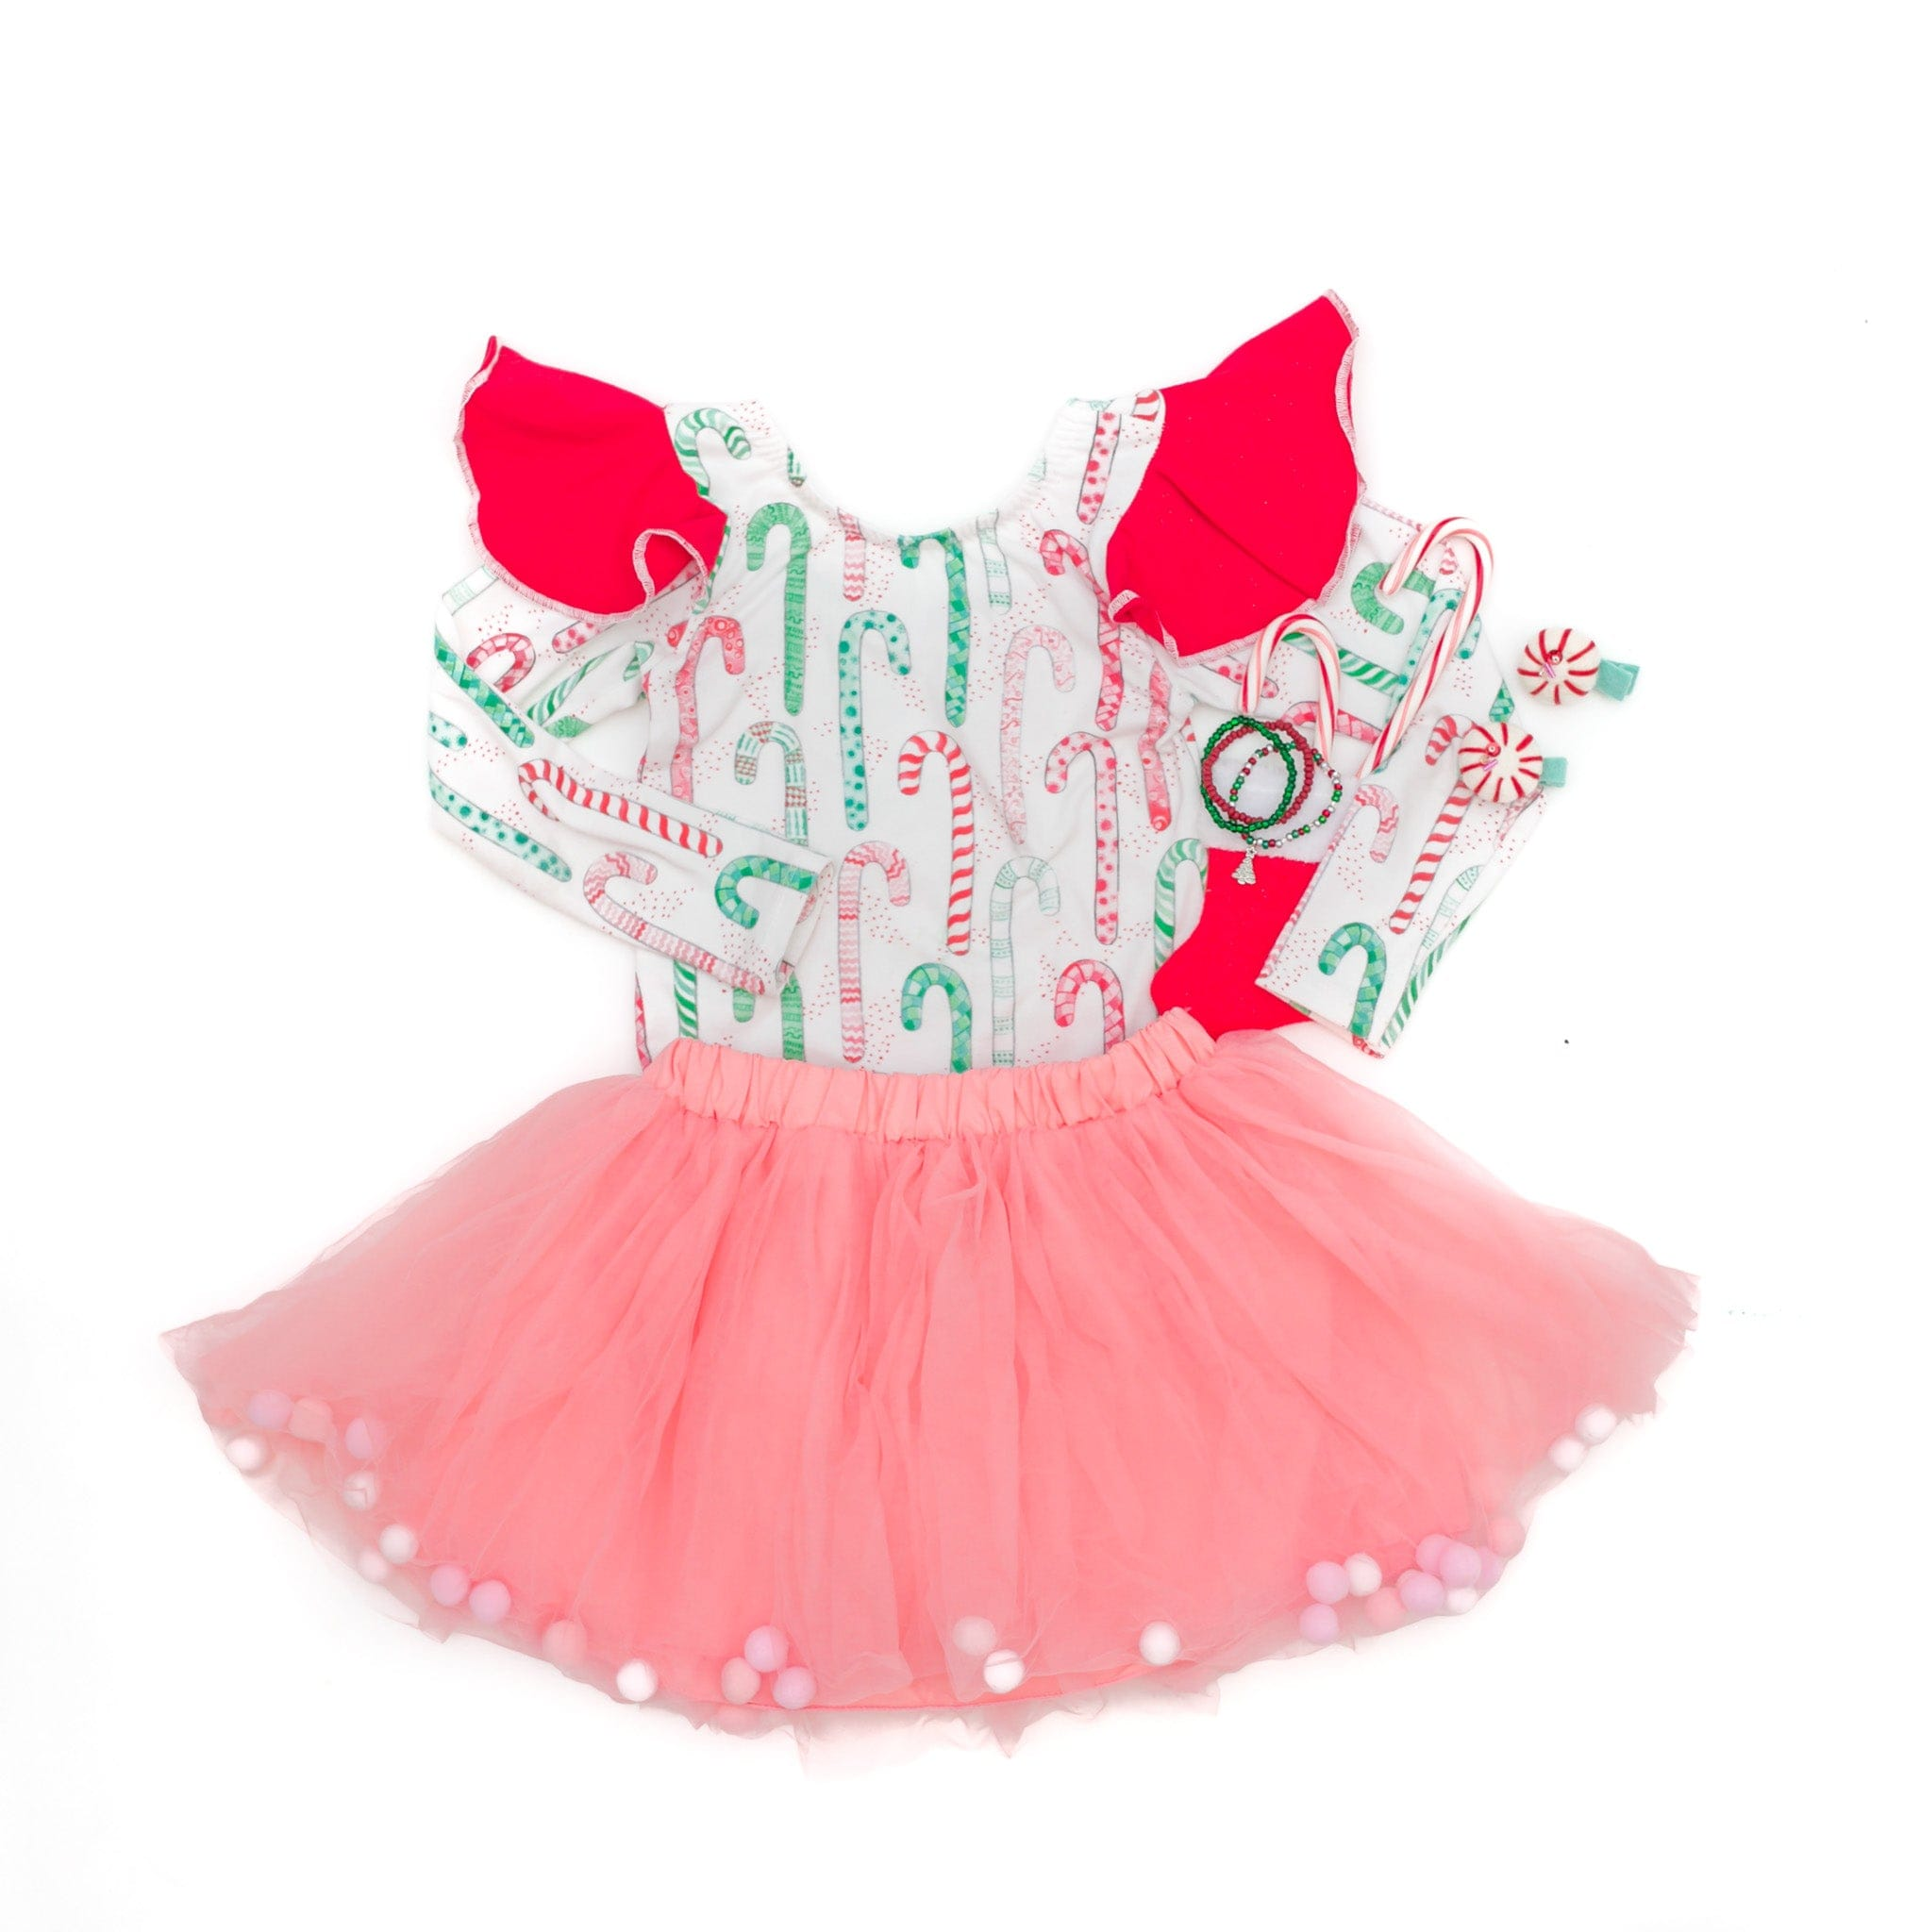 peach pom pom tutu, rose pom pom tutu, pink pom pom tutu for girls, tutu for girls